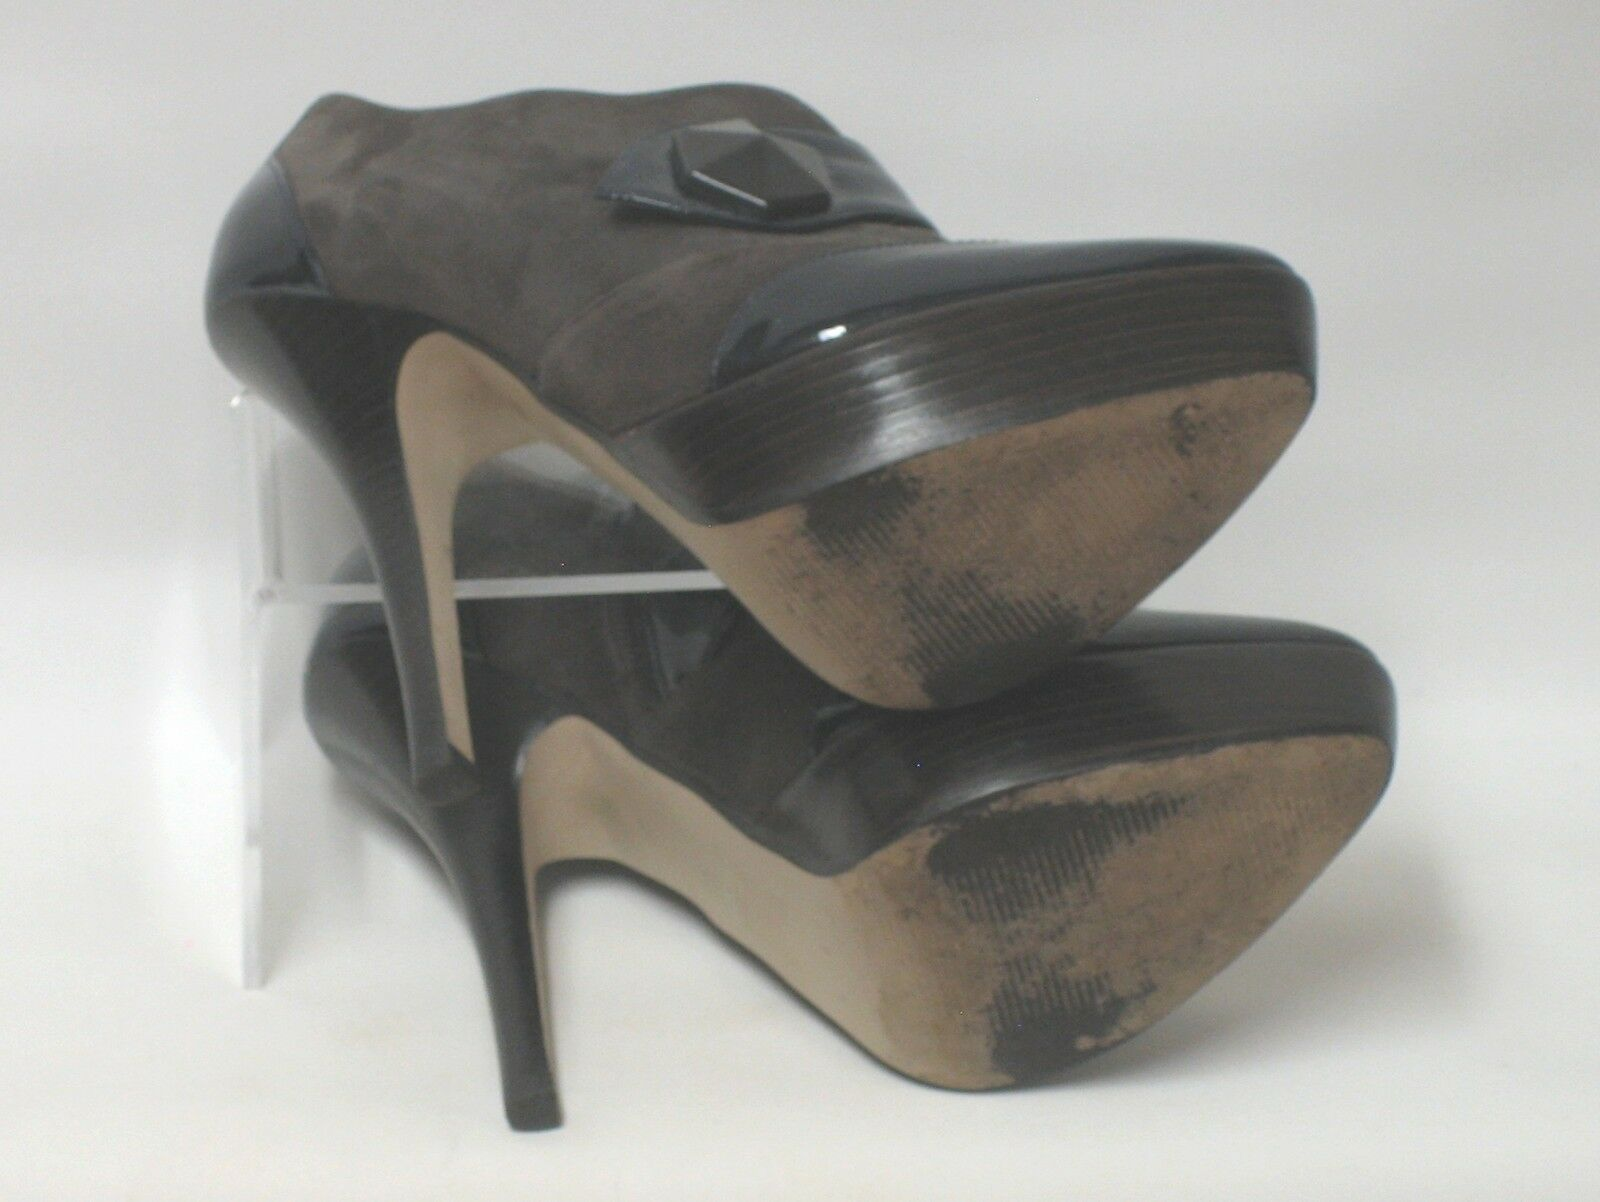 CARVELA KURT High GEIGER Leder Suede Very High KURT Stiletto Heel Schuhe Stiefel UK 6.5 8ee405